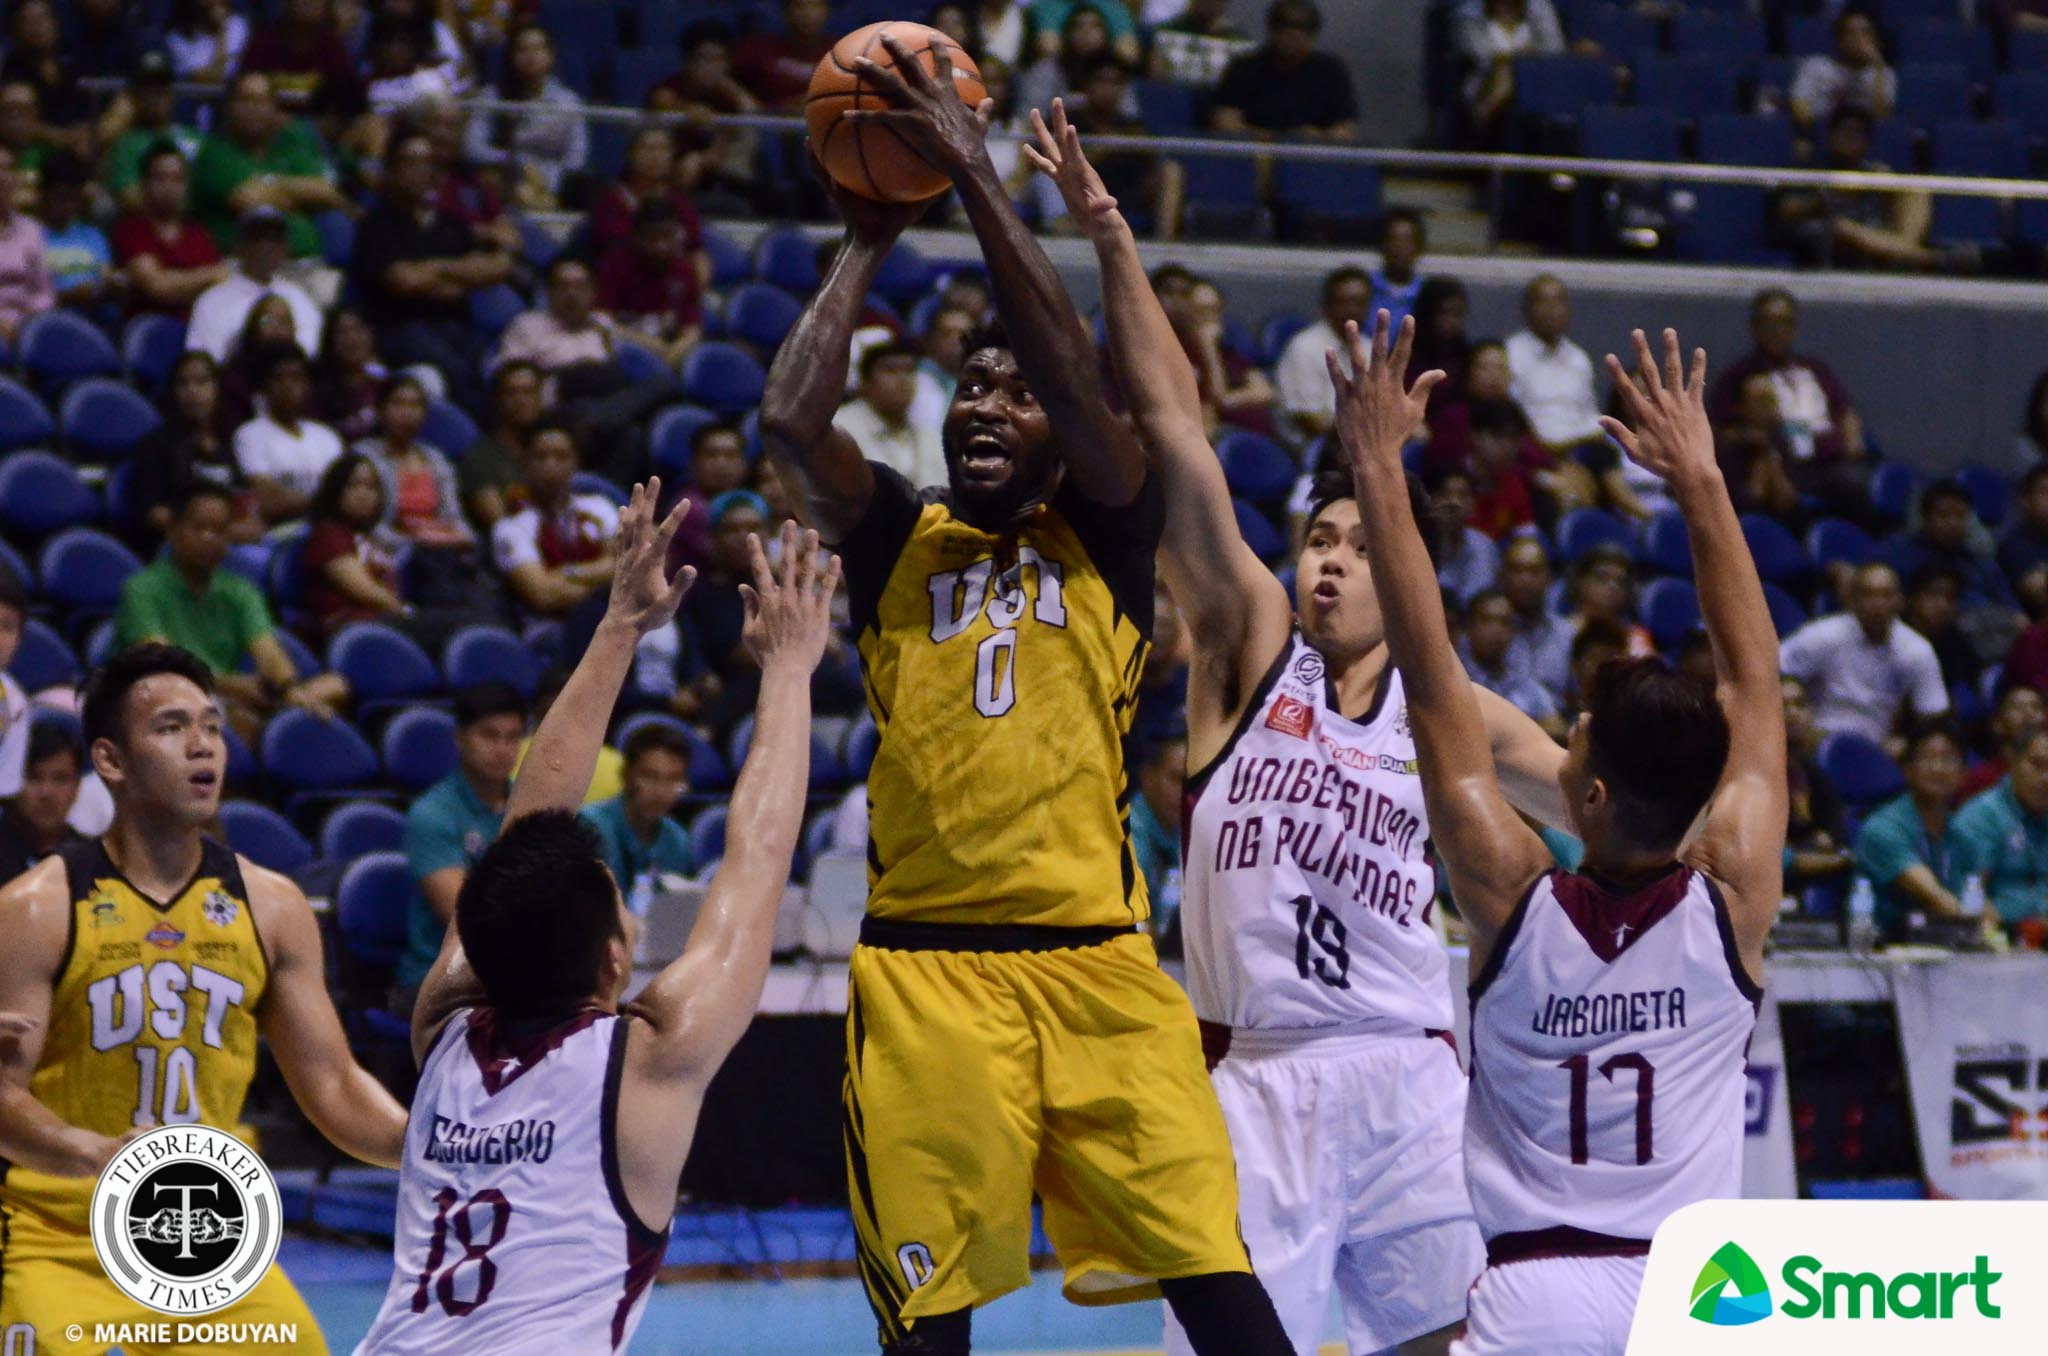 Tiebreaker Times Jun Manzo hopes 'Cebu brother' Steve Akomo makes speedy recovery Basketball News UAAP UP UST  UP Men's Basketball UAAP Season 81 Women's Basketball UAAP Season 81 Steve Akomo Jun Manzo